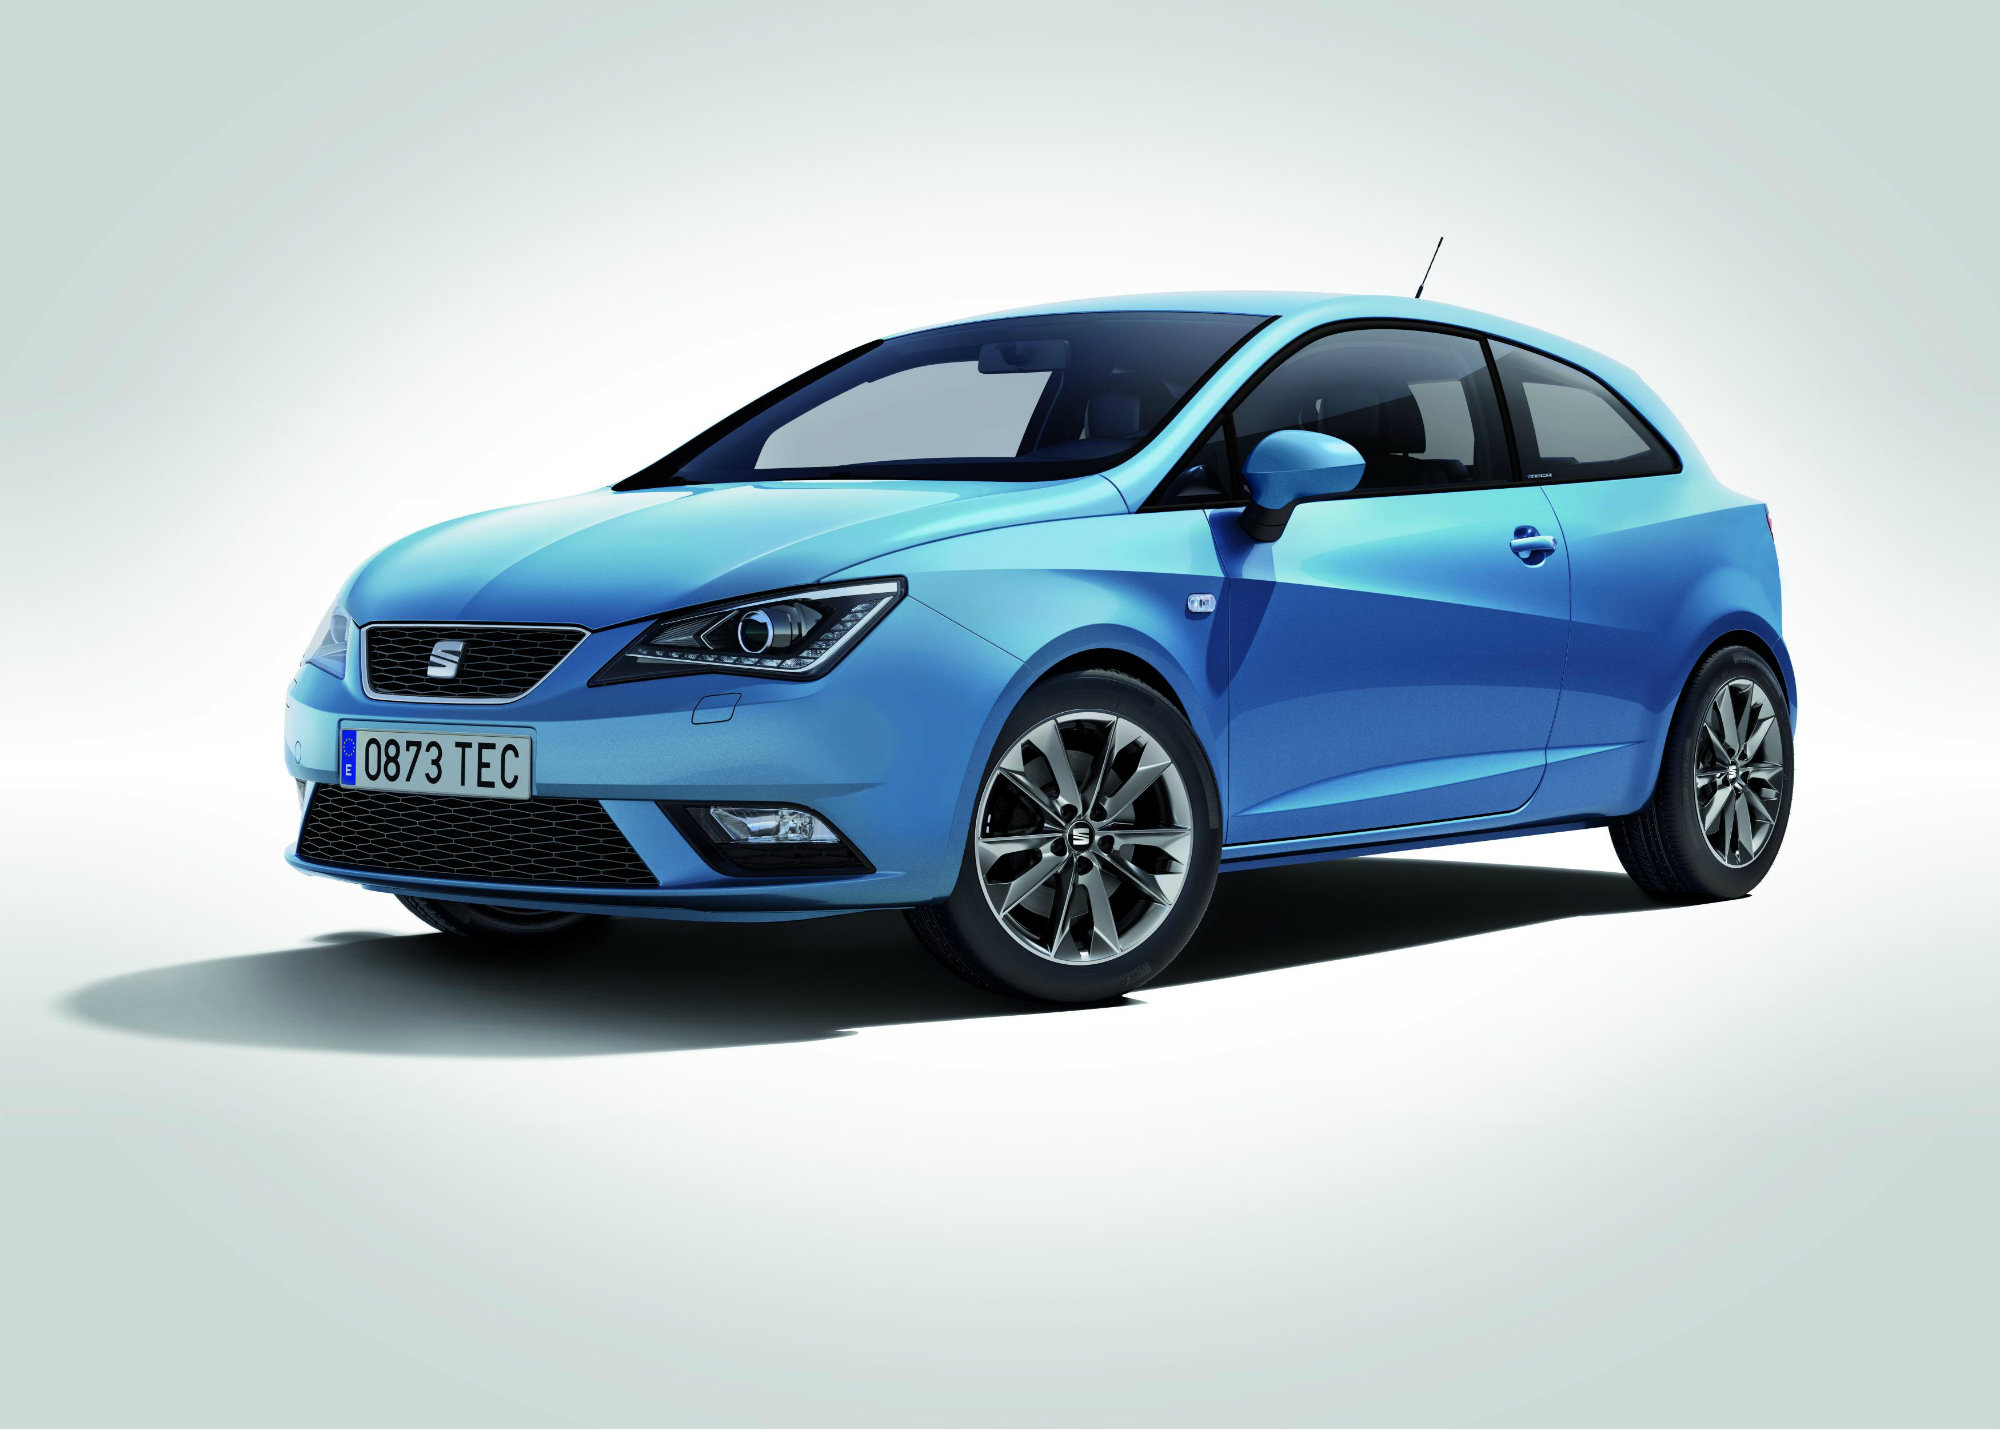 Seat I Tech Special Edition Models Launched In The Uk